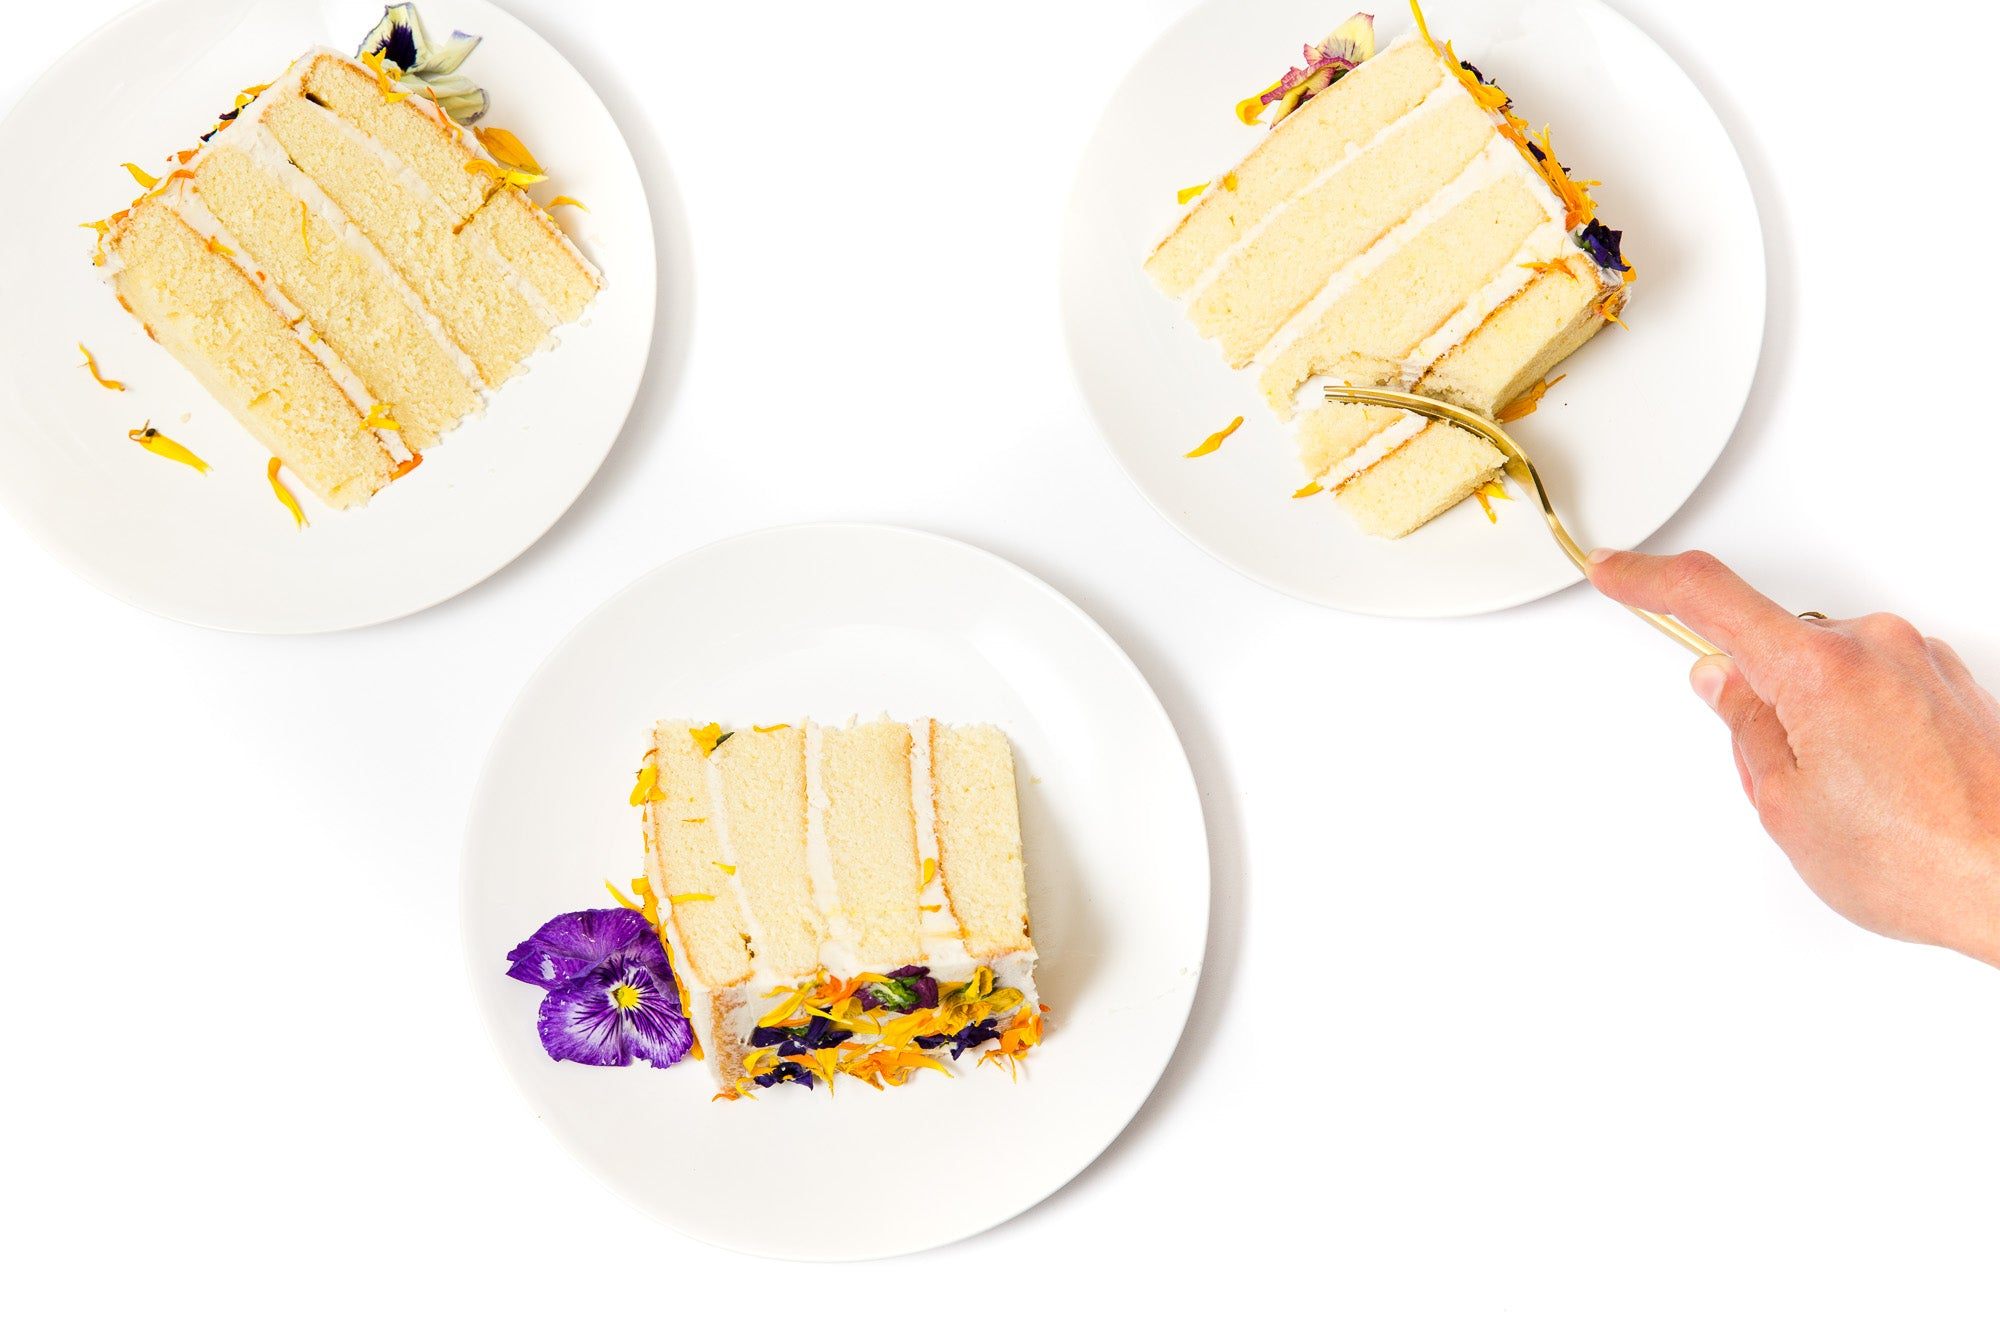 Image from above of three pieces of Miss Jones Baking Co Floral Bloom Layer Cake on plates